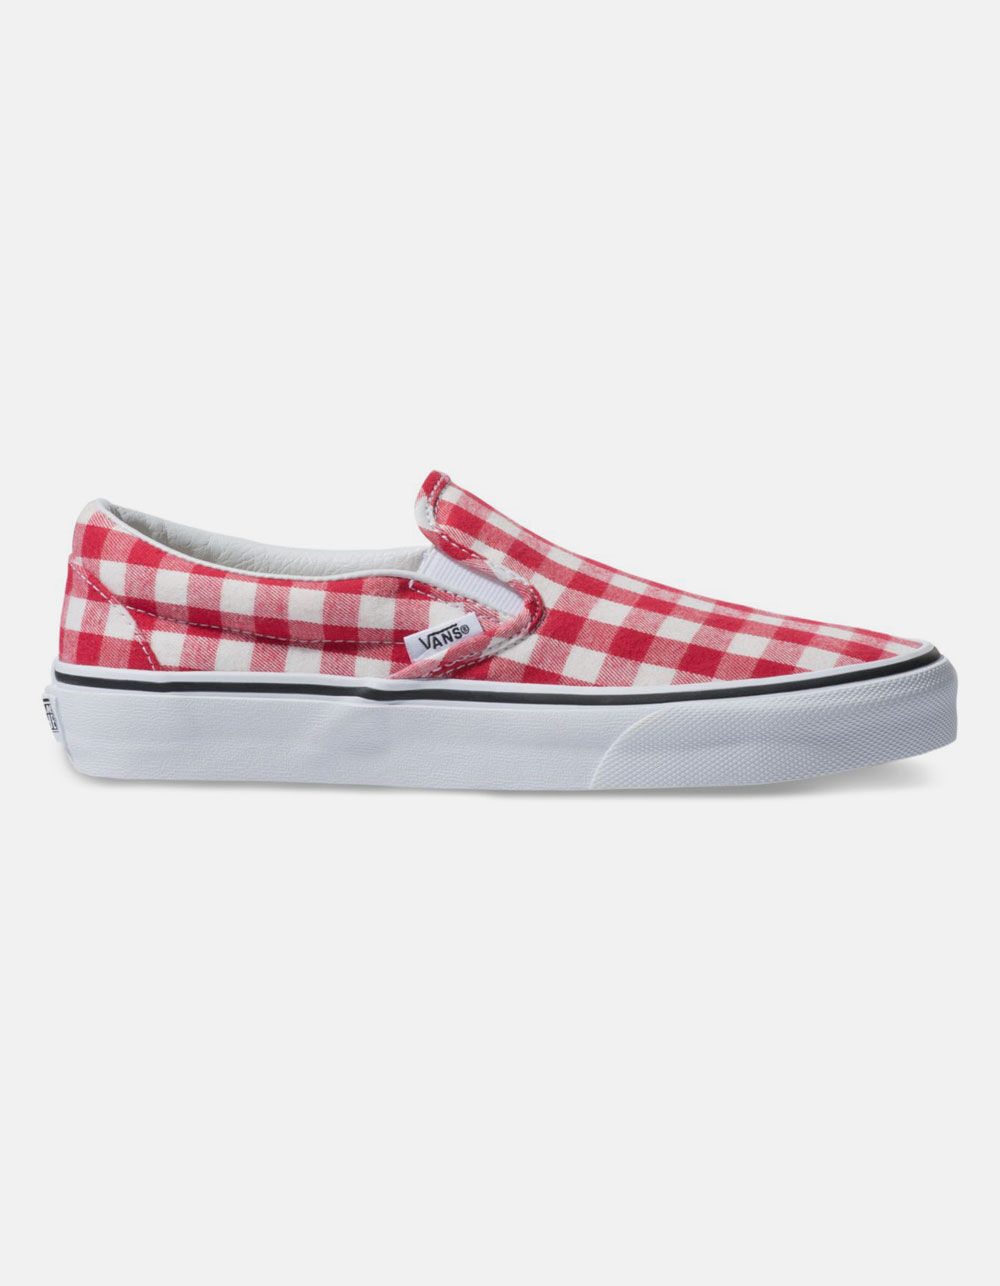 VANS GINGHAM CLASSIC SLIP-ON SHOES